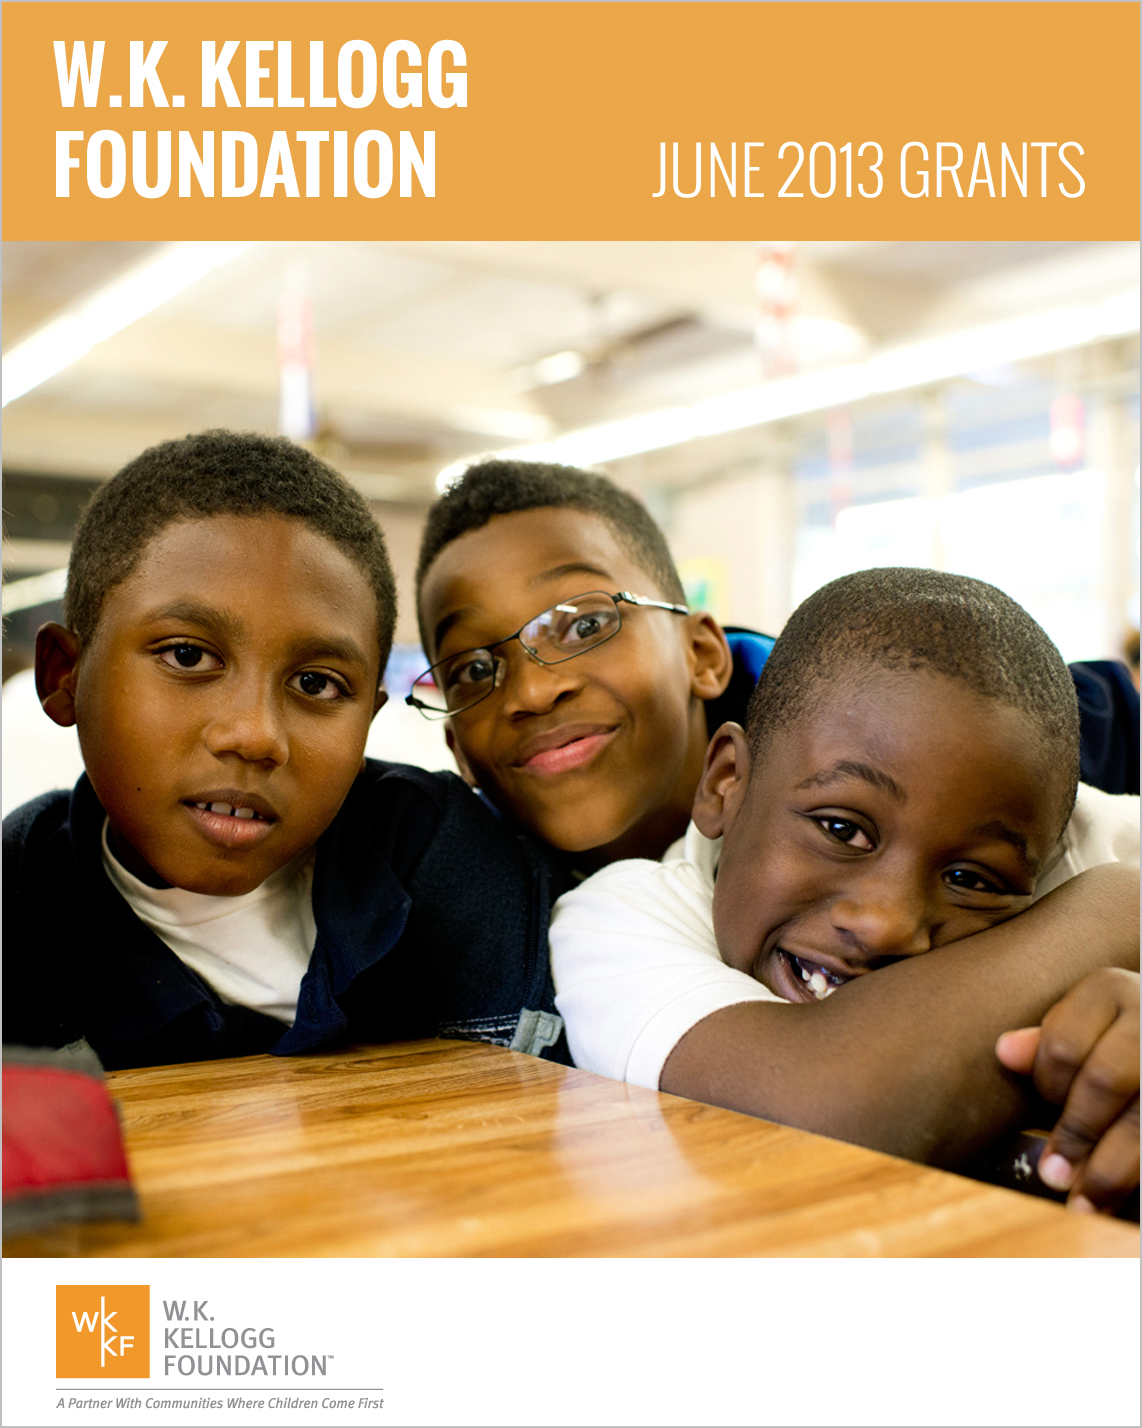 W.K. Kellogg Foundation Grants - June 2013